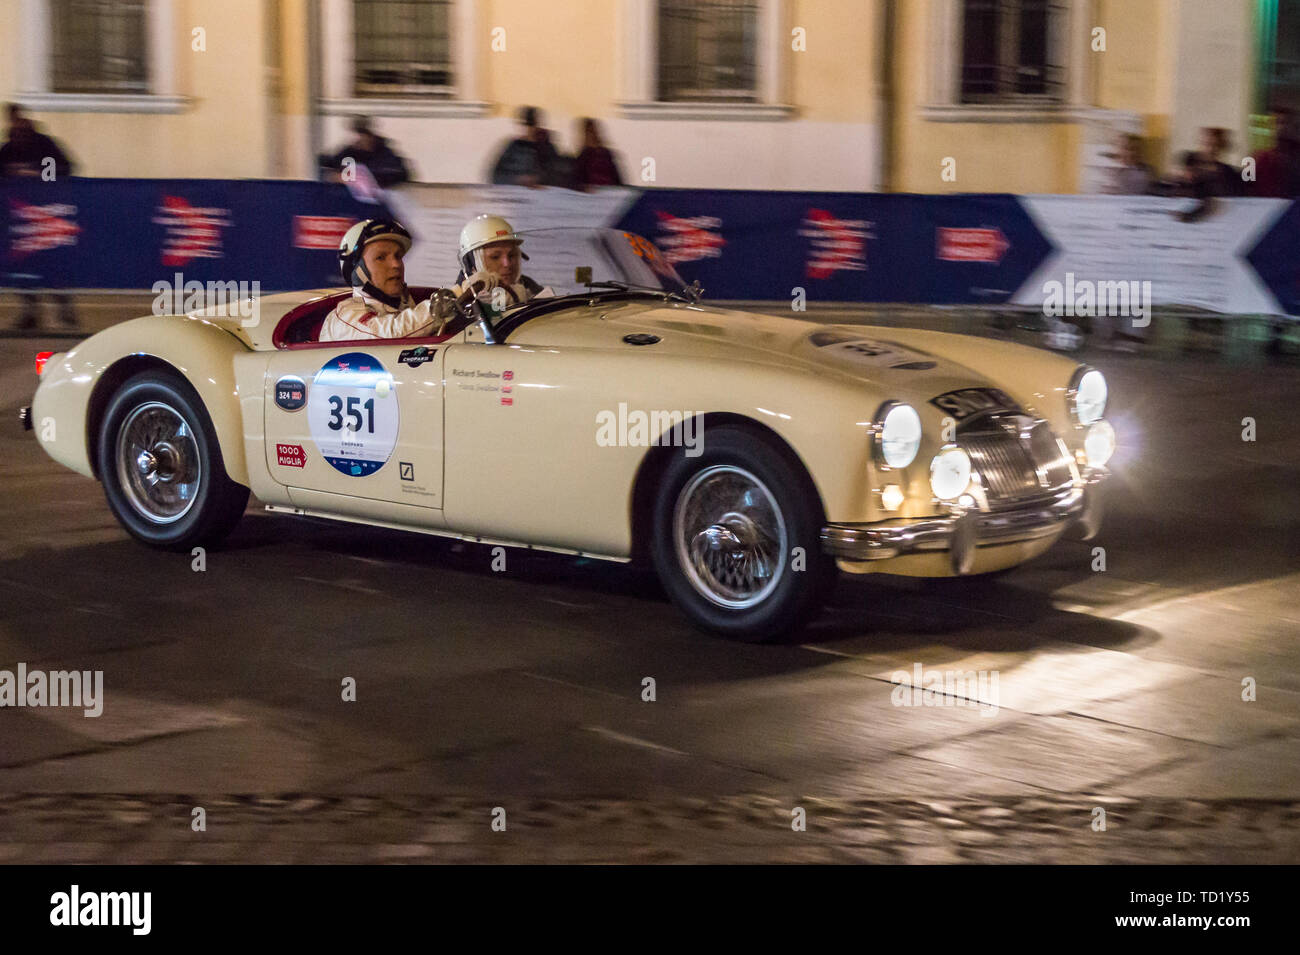 1955-mga-driven-by-richard-swallow-mille-miglia-classic-car-rally-piazza-del-popolo-ravenna-emilia-romagna-italy-TD1Y55.jpg